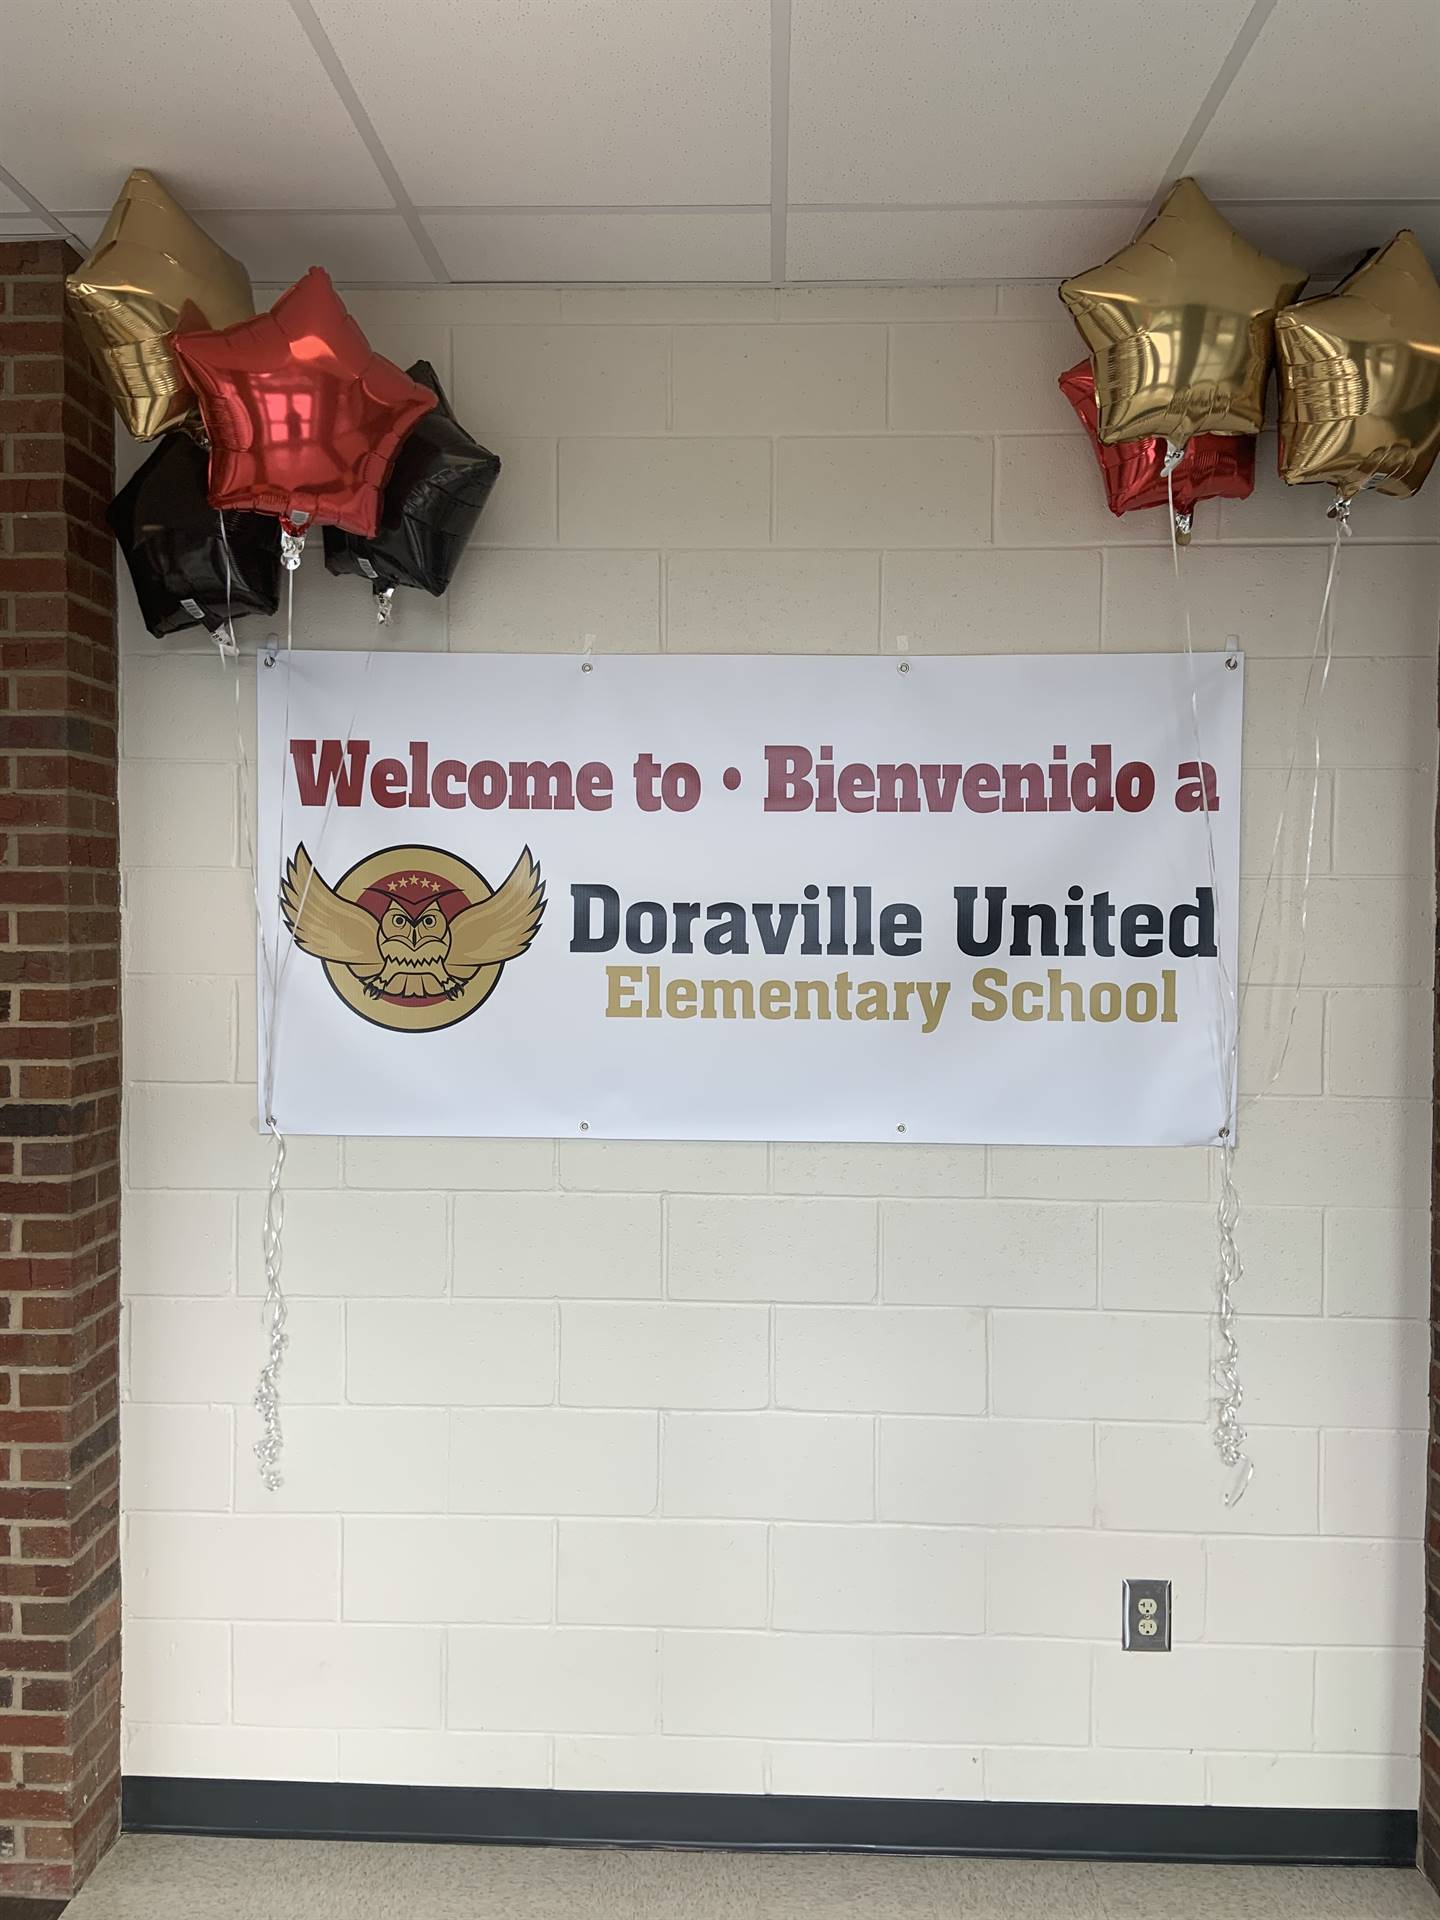 Welcome to Doraville United